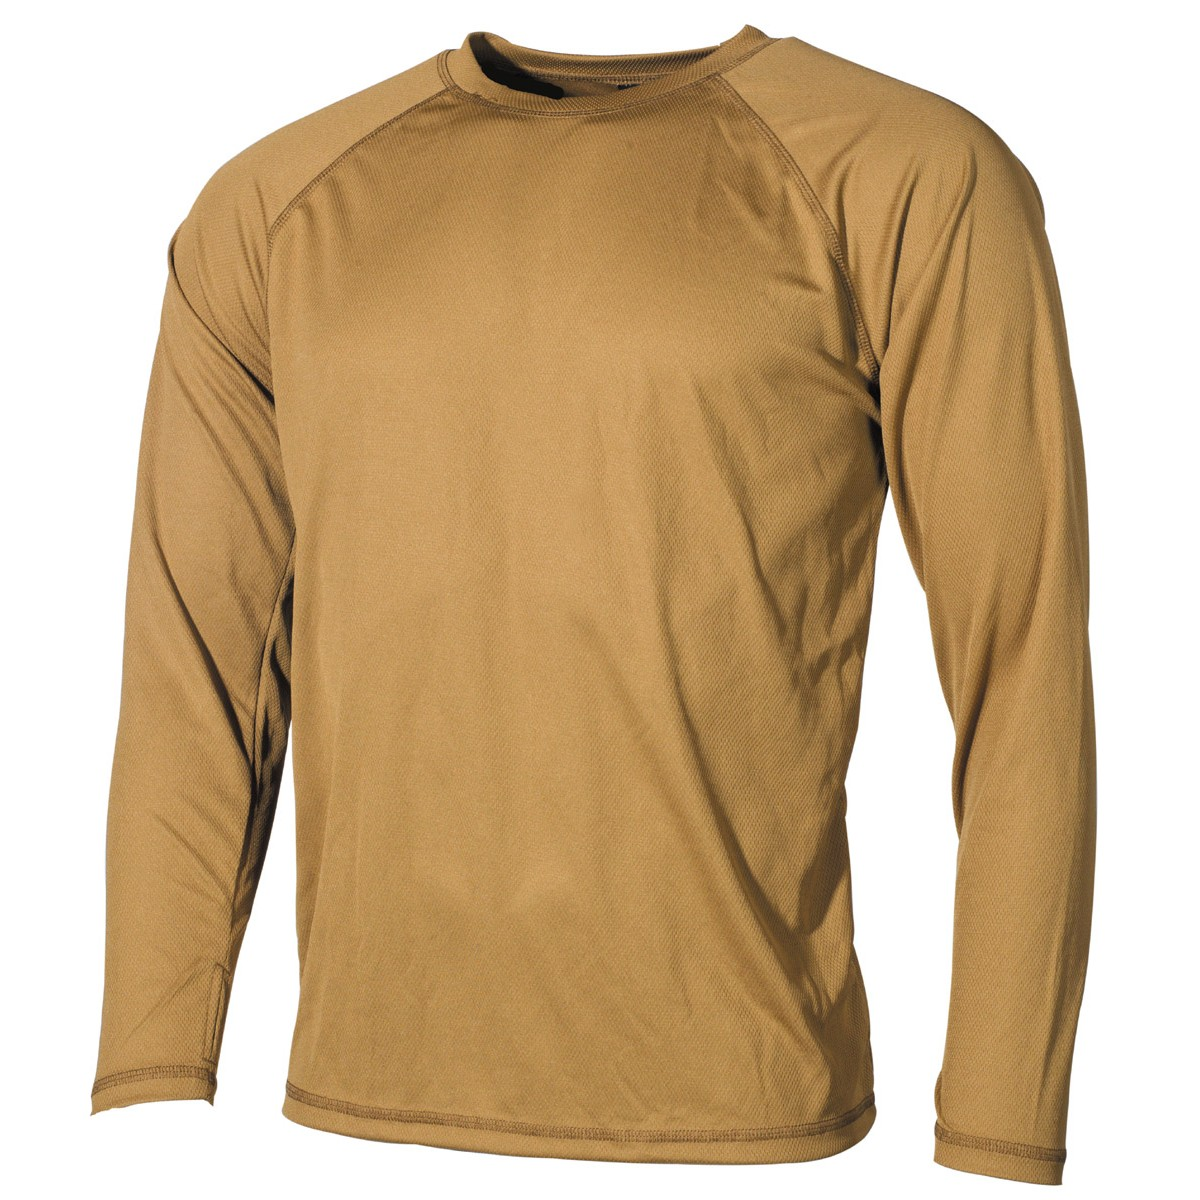 Military/Outdoor Undershirt Level 1 Gen.3 Lightweight and Quick Drying - Coyote